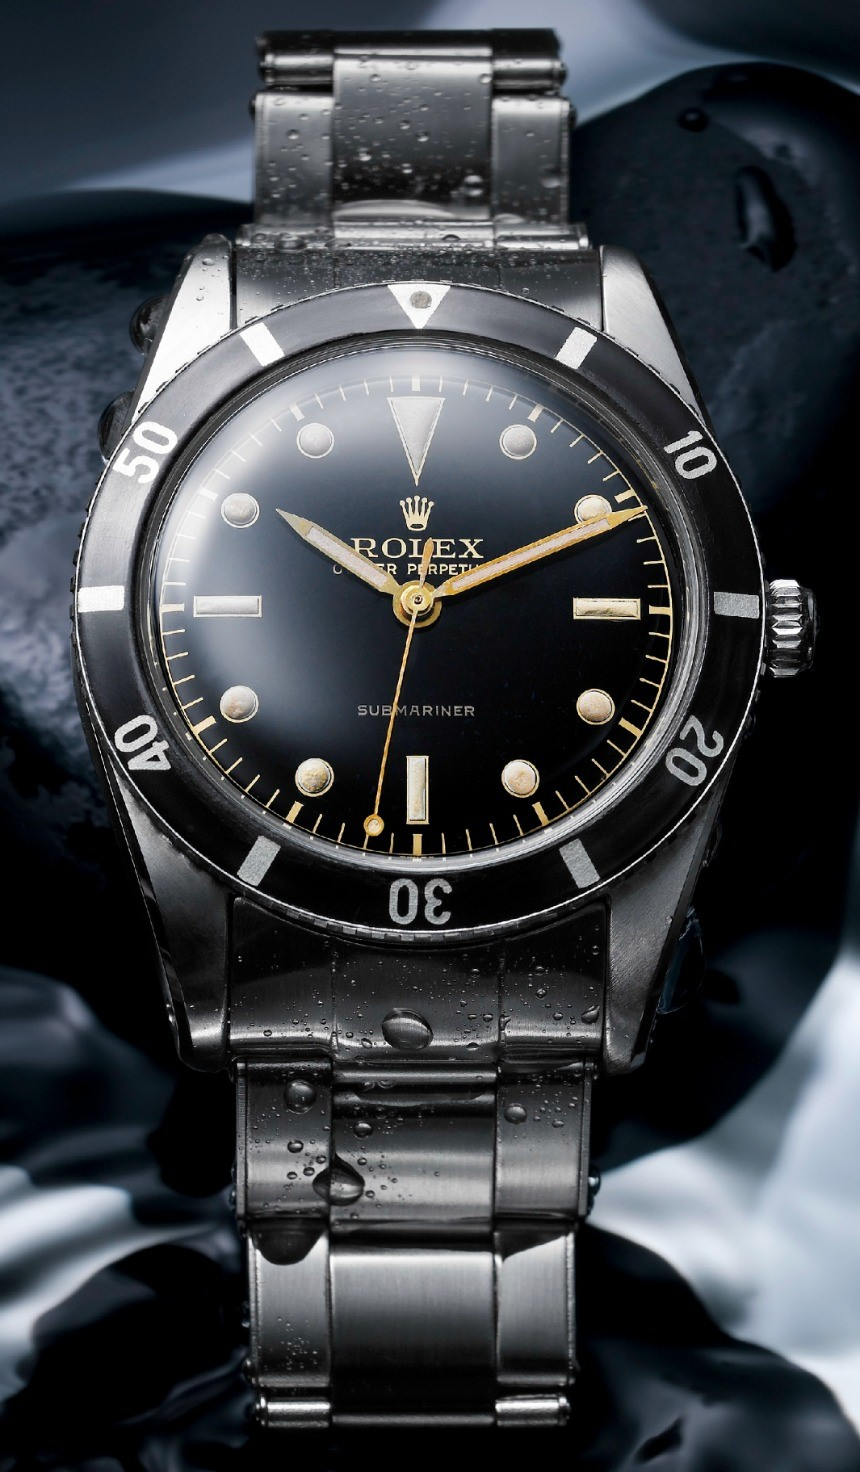 Rolex Oyster Perpetant Submariner ref. 6204